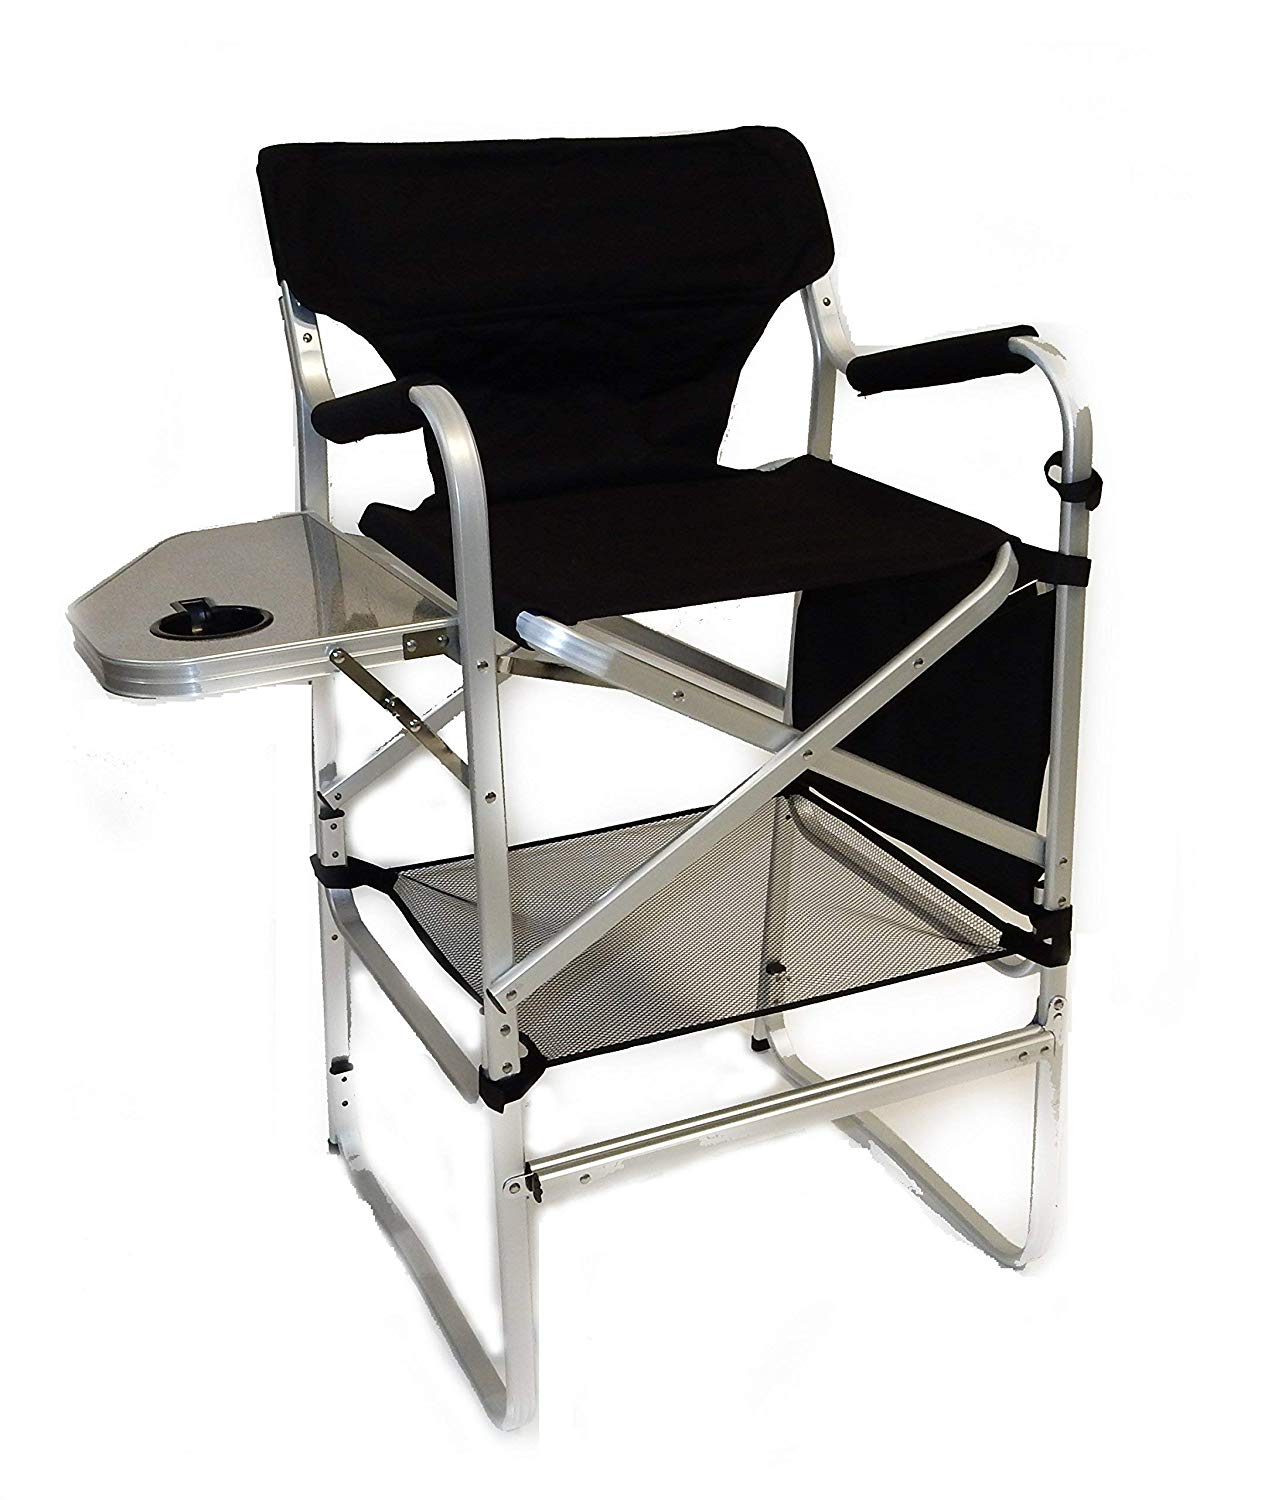 world outdoor products lightweight professional tall side table directors chair with footrest cup holder carry handles storage bag and lower level threshold floor lamp target